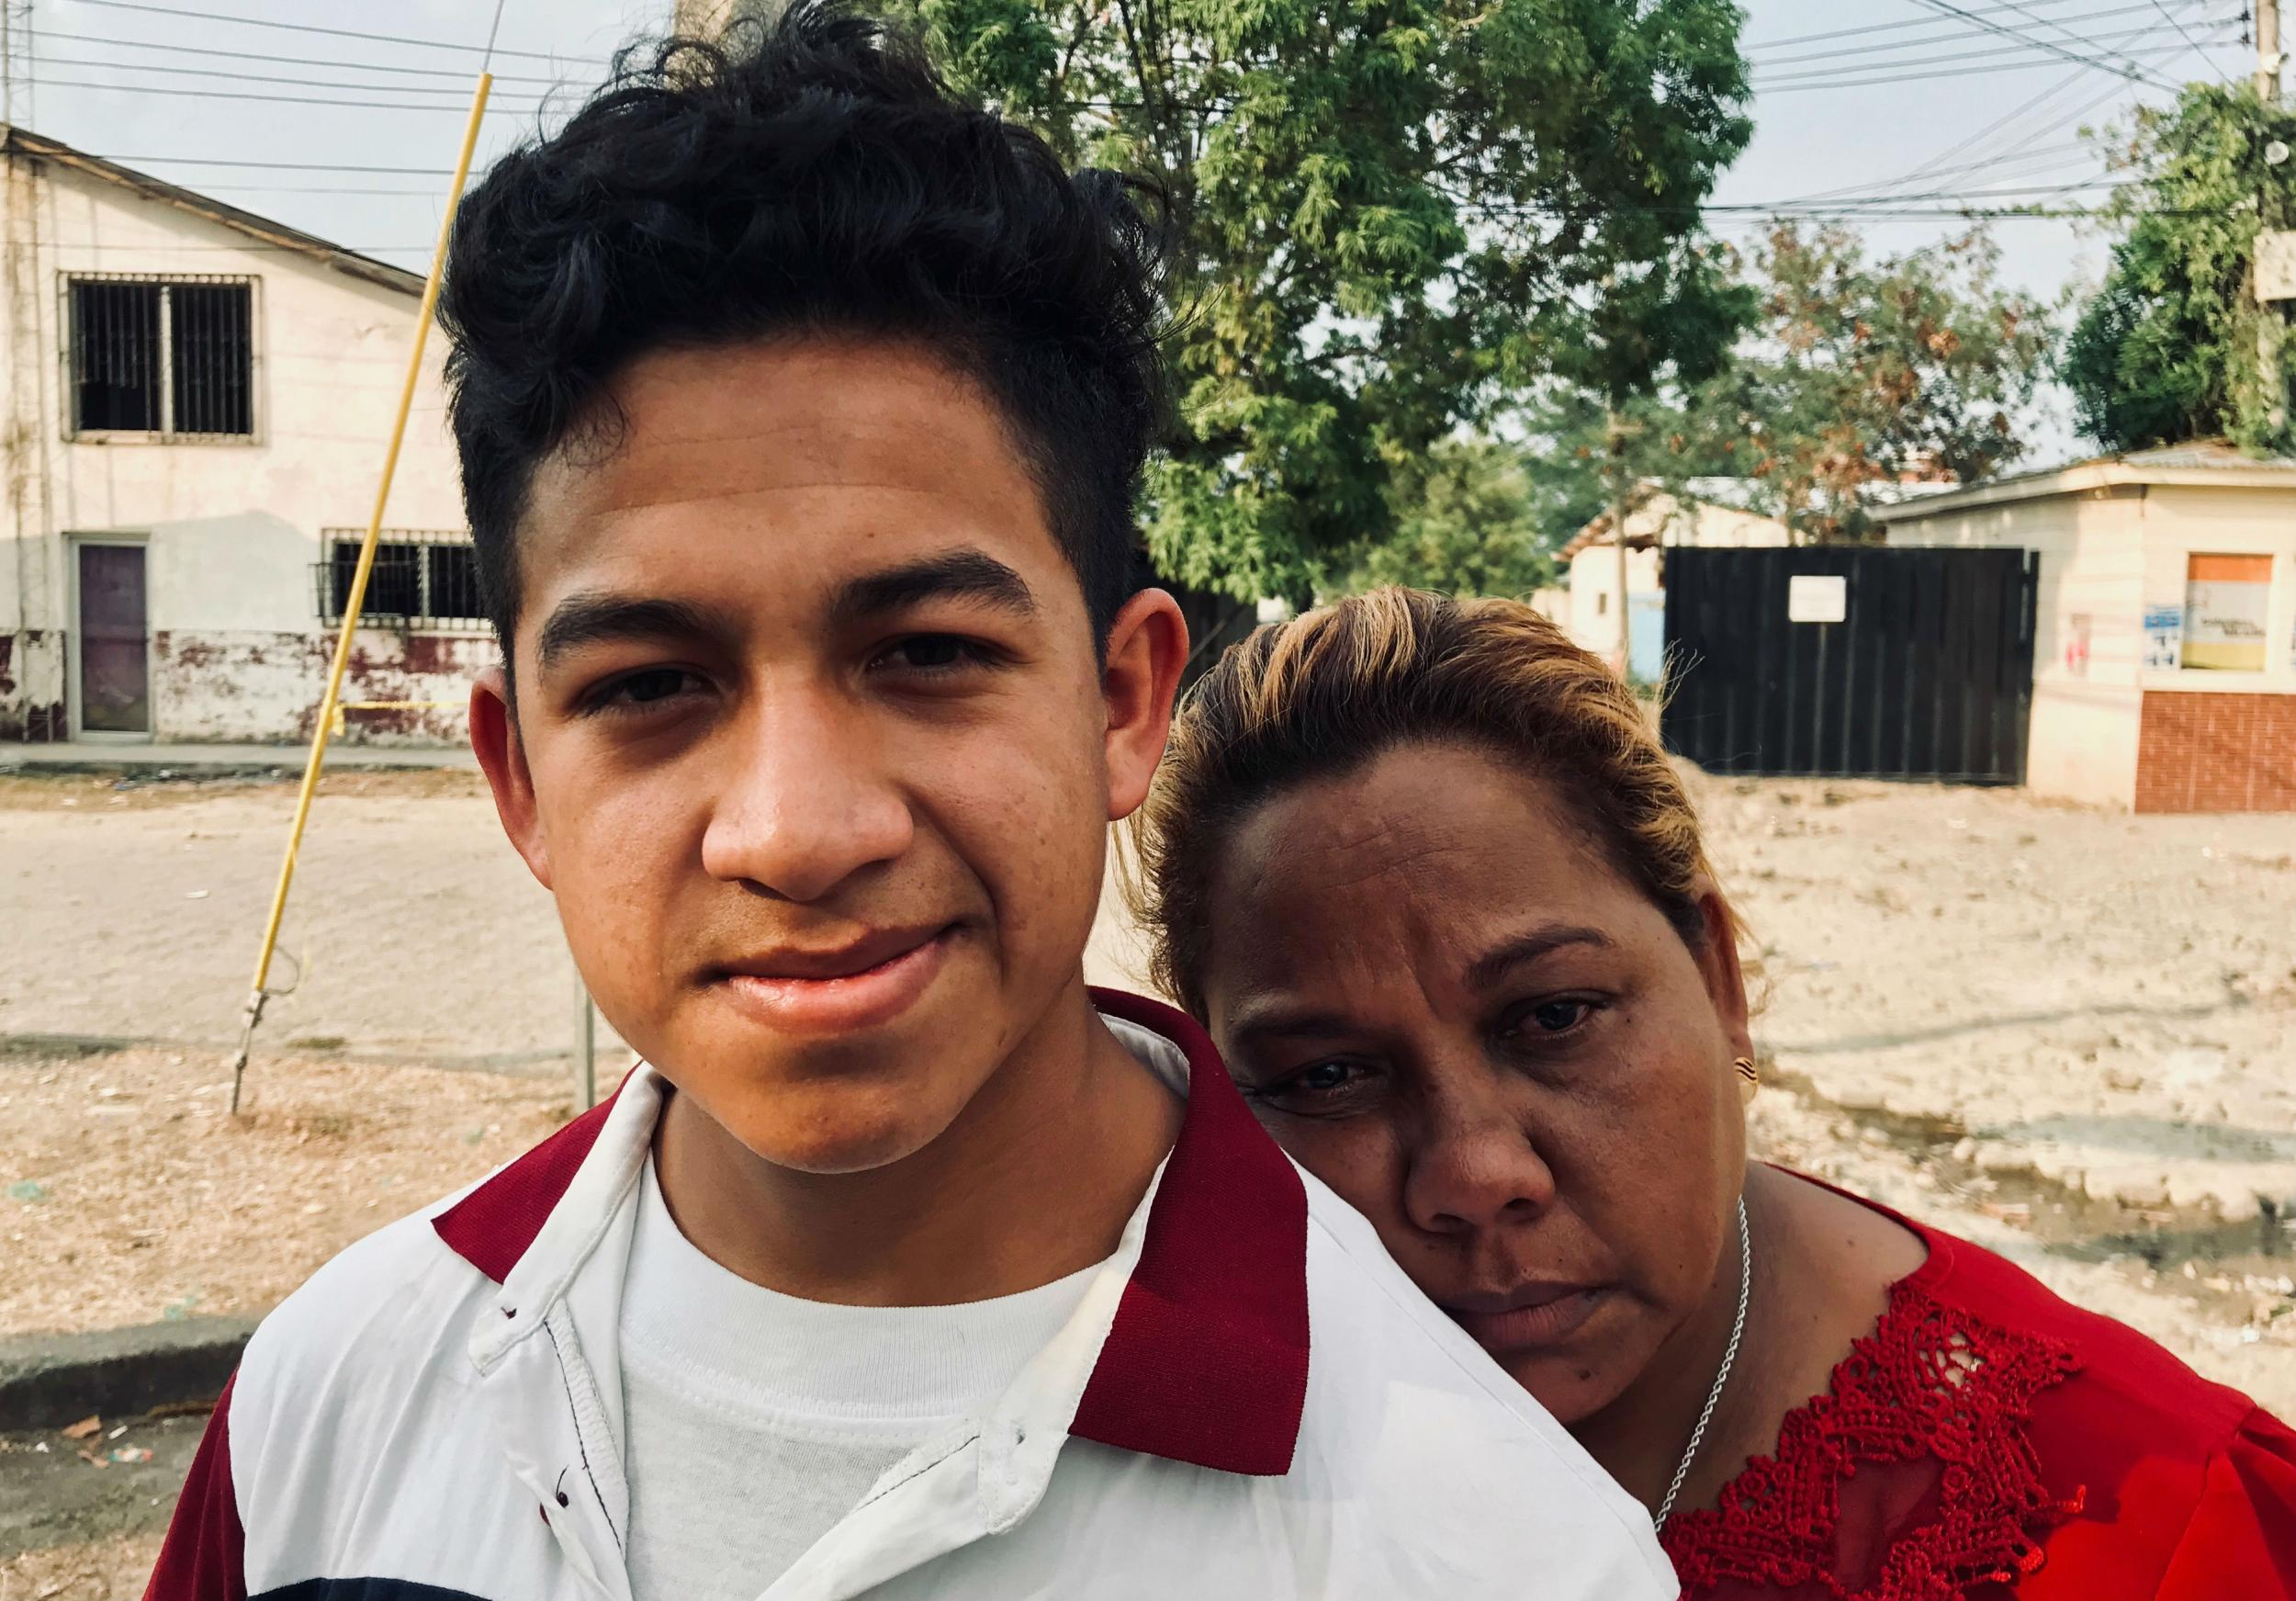 Inside ground zero of the Central American migrant crisis